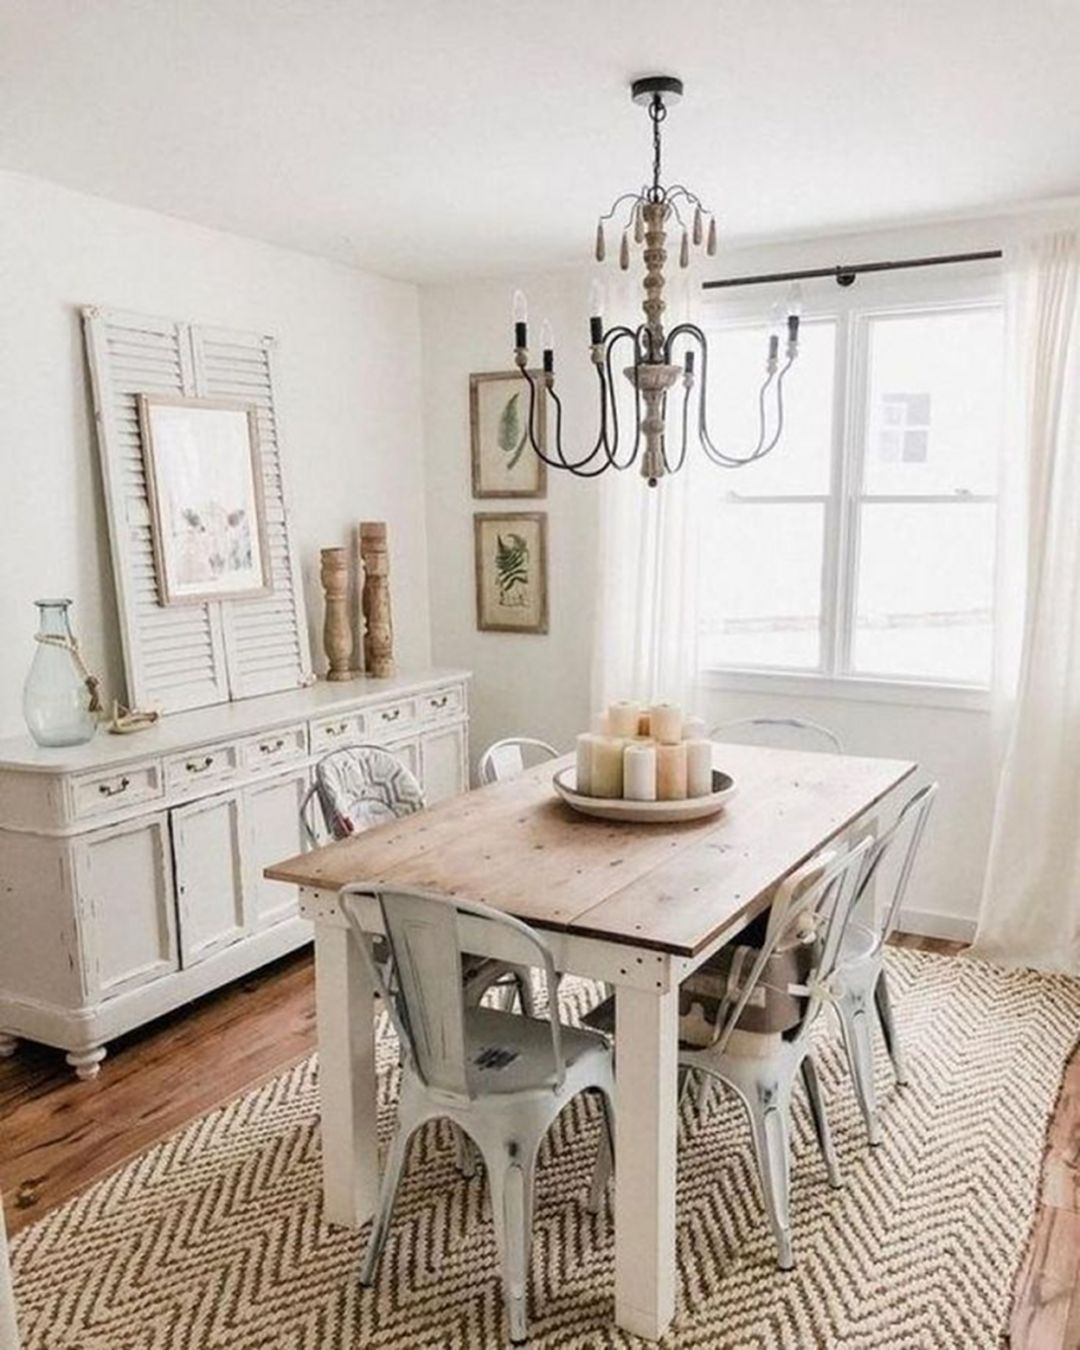 Most Popular Dining Room Colors: 35 Most Popular Dining Room With Farmhouse Dining Table To